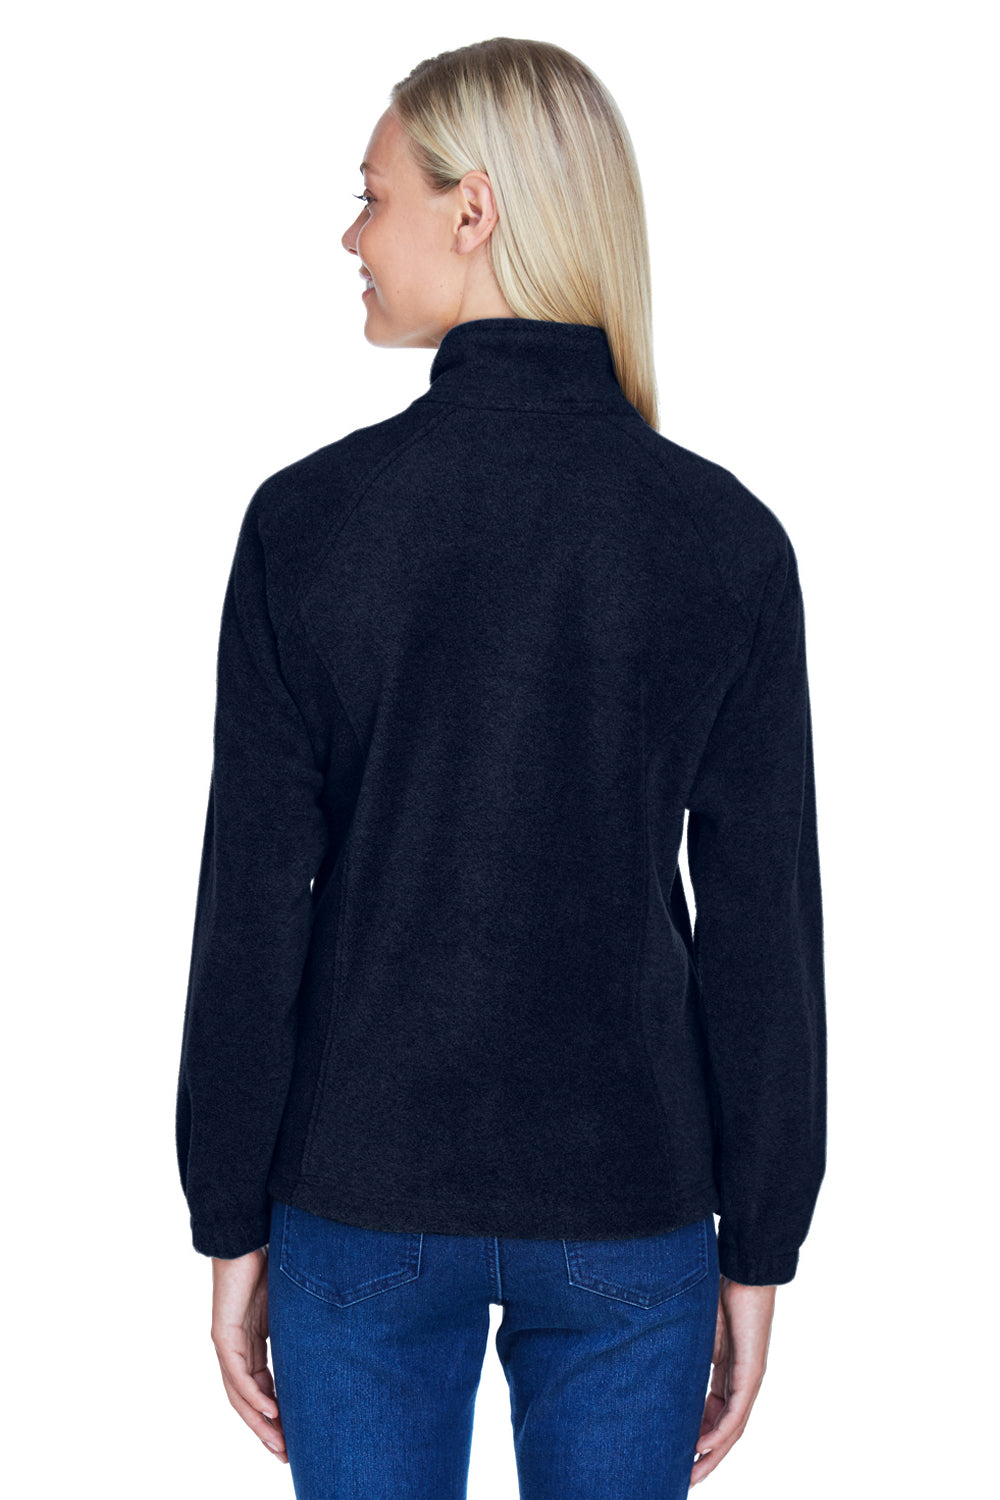 Harriton M990W Womens Full Zip Fleece Jacket Navy Blue Back